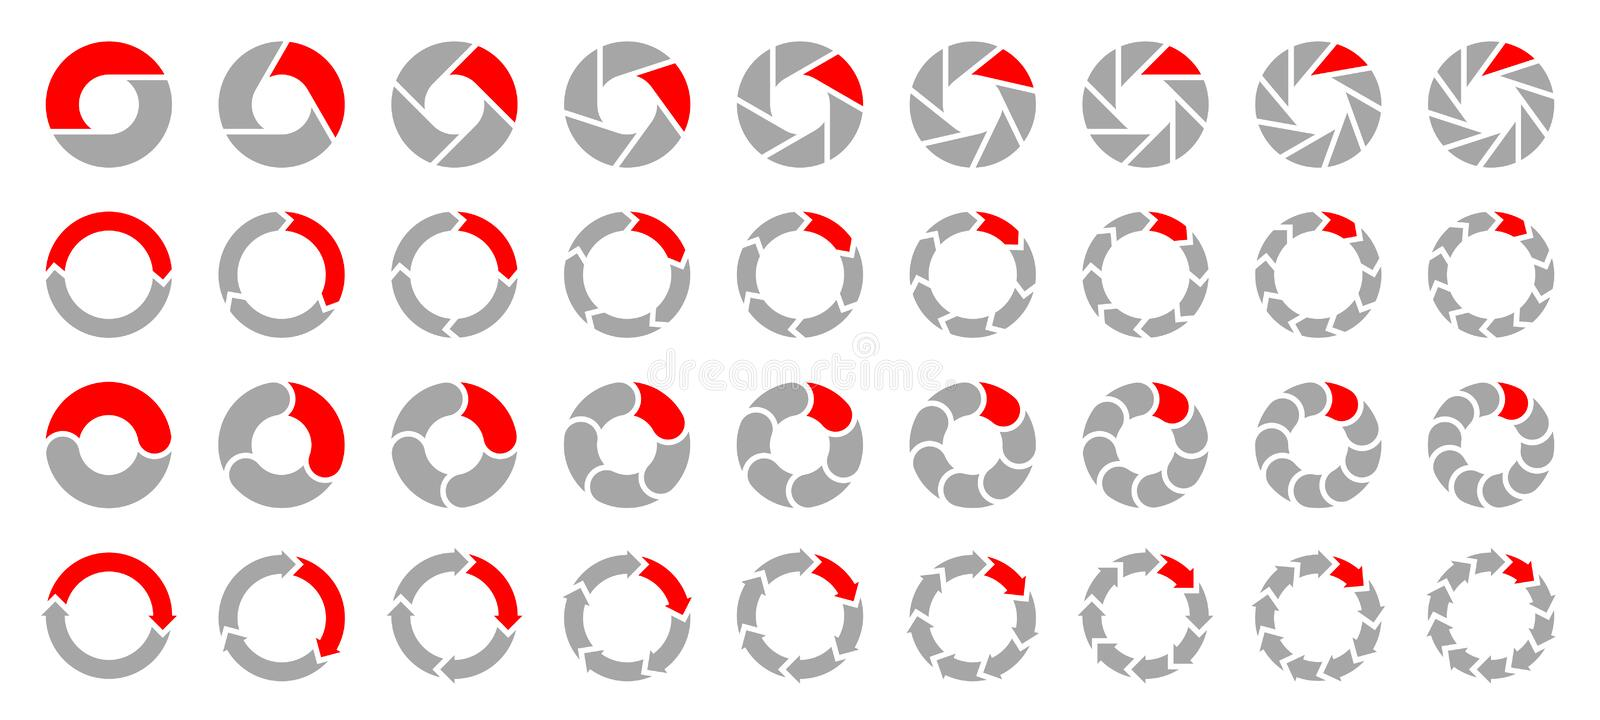 Set Of Different Pie Charts Arrows Gray And Red vector illustration